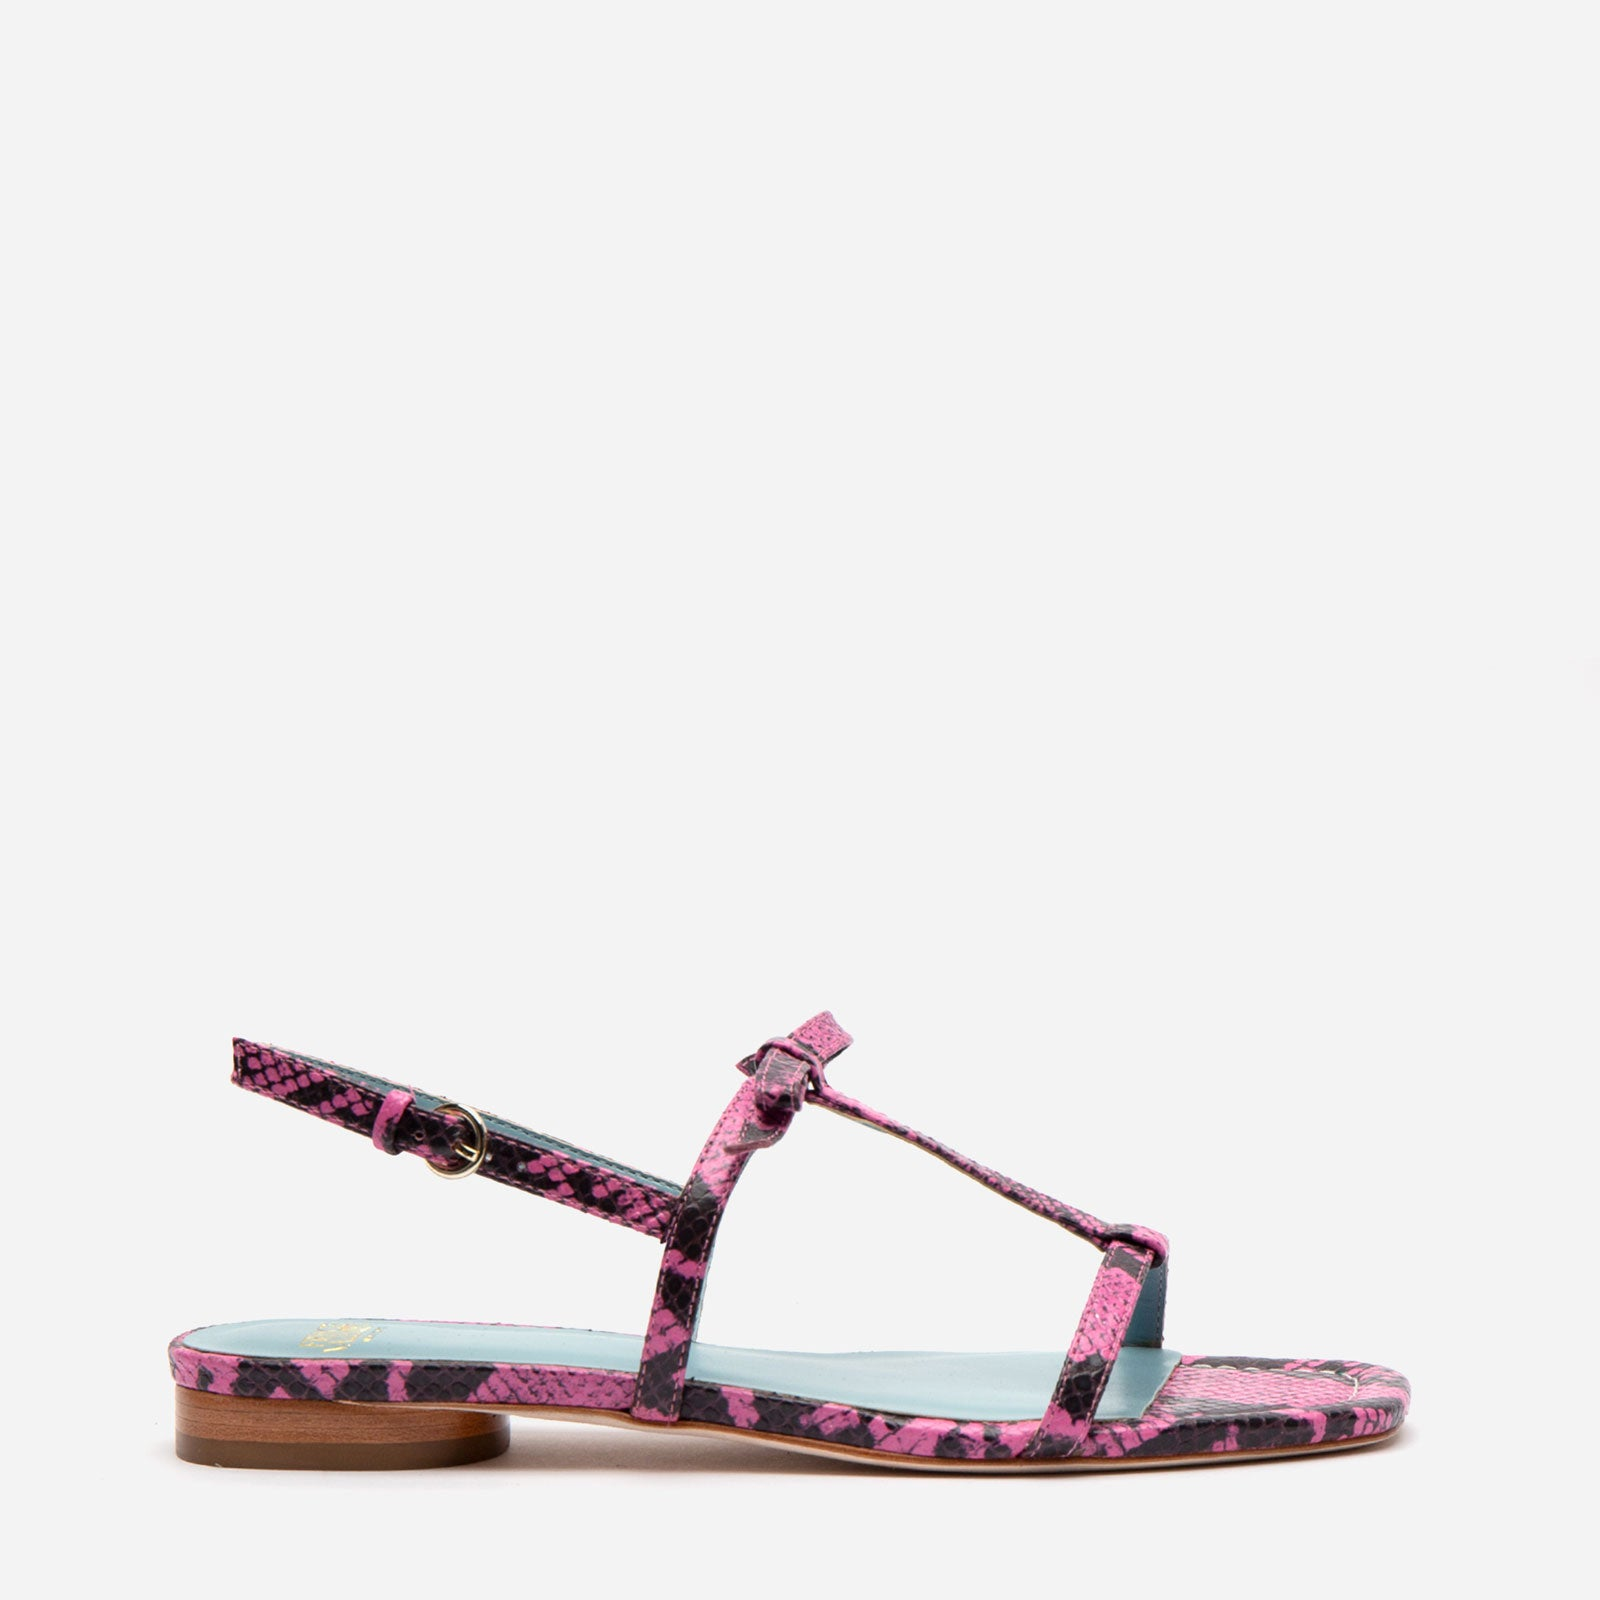 Lily Snake Embossed Leather Sandal Pink *FINAL SALE*